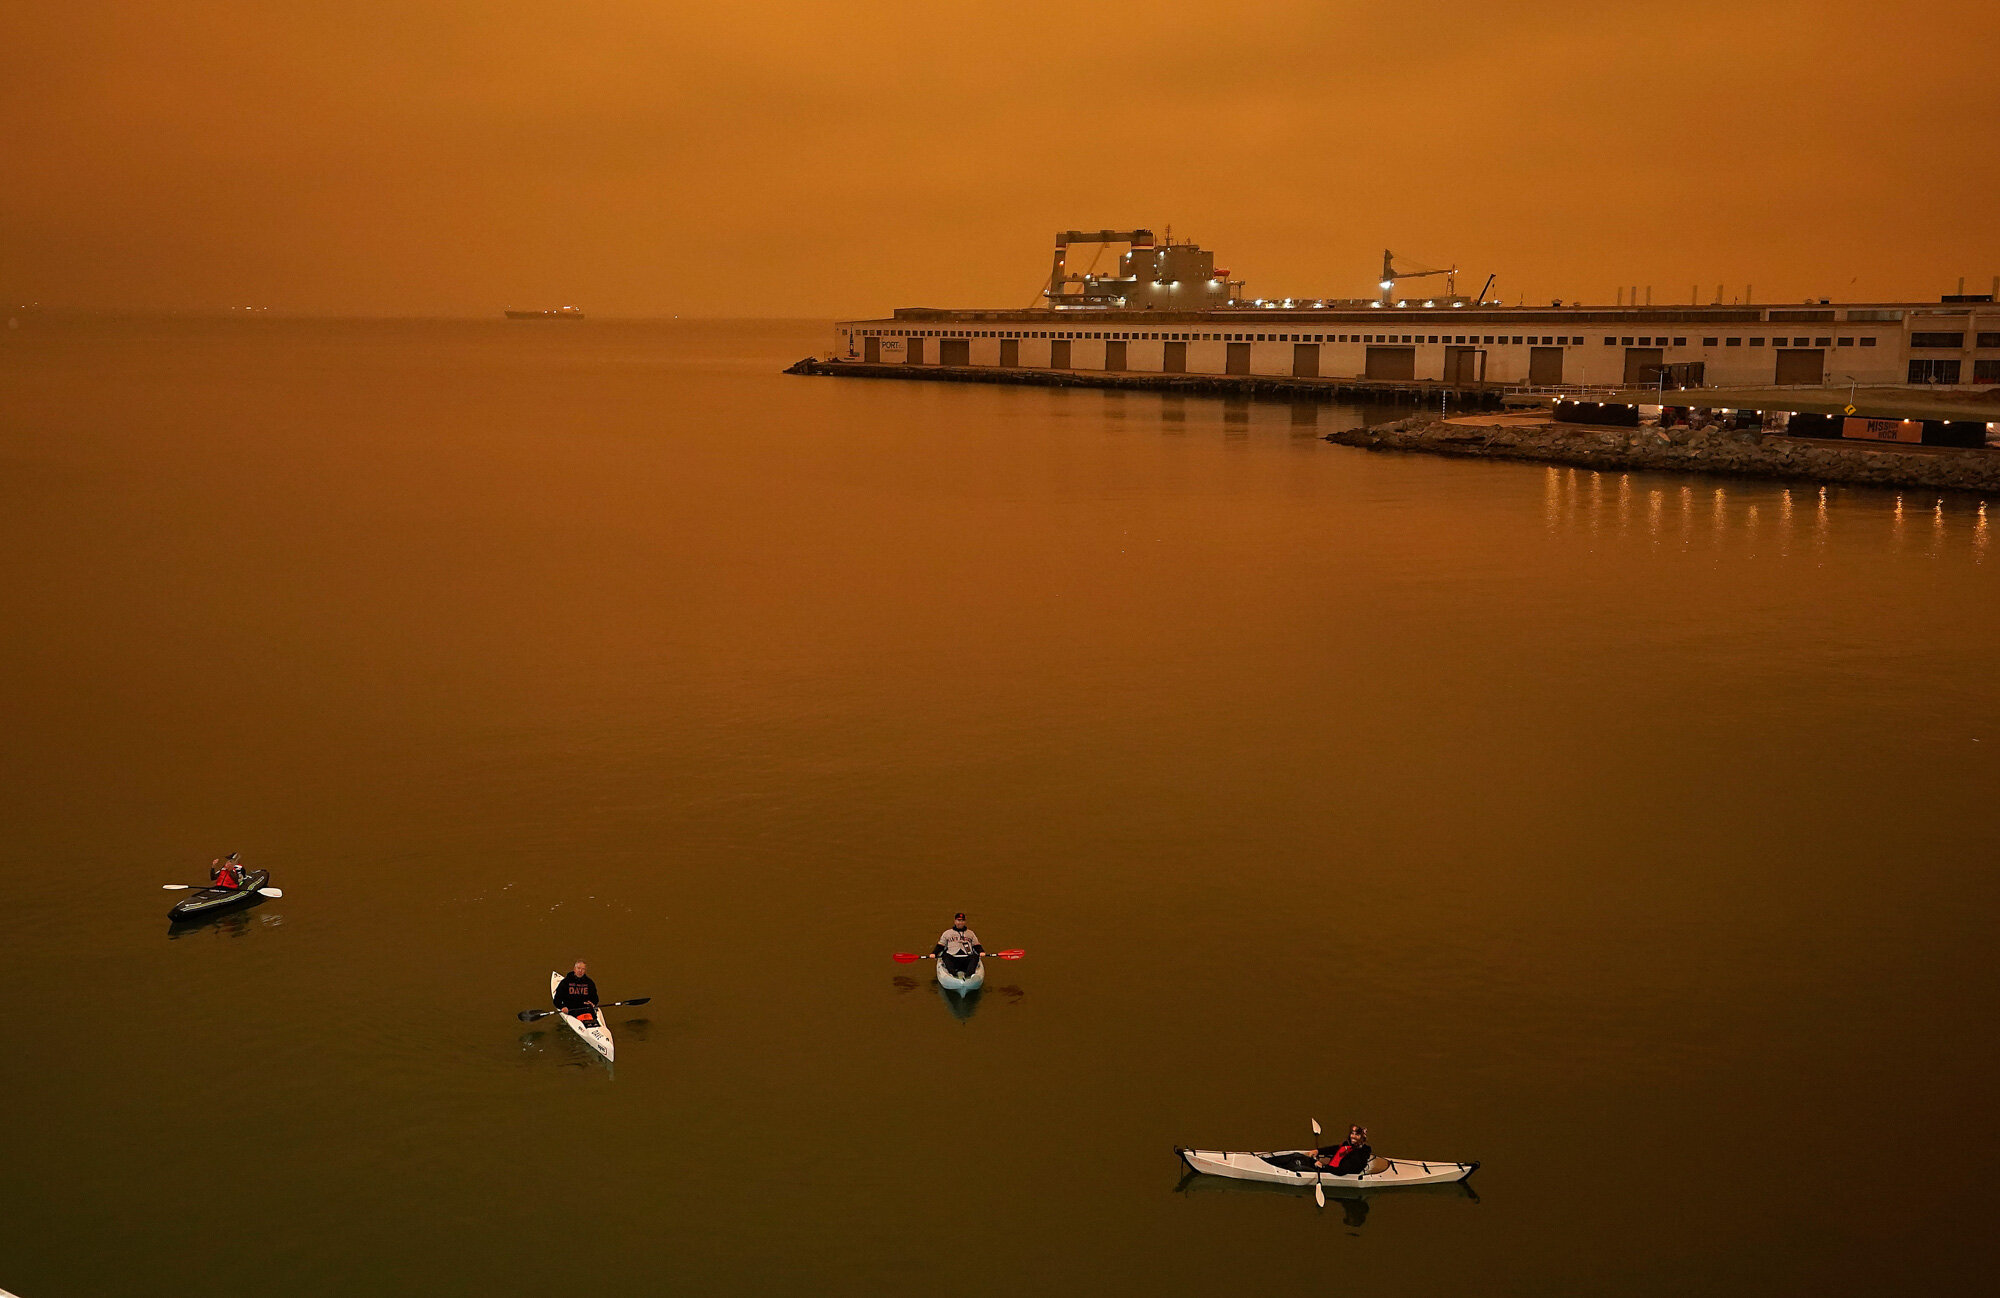 People in kayaks paddle in McCovey Cove outside Oracle Park in San Francisco during a baseball game between the San Francisco Giants and the Seattle Mariners on Sept. 9, 2020. (AP Photo/Tony Avelar)